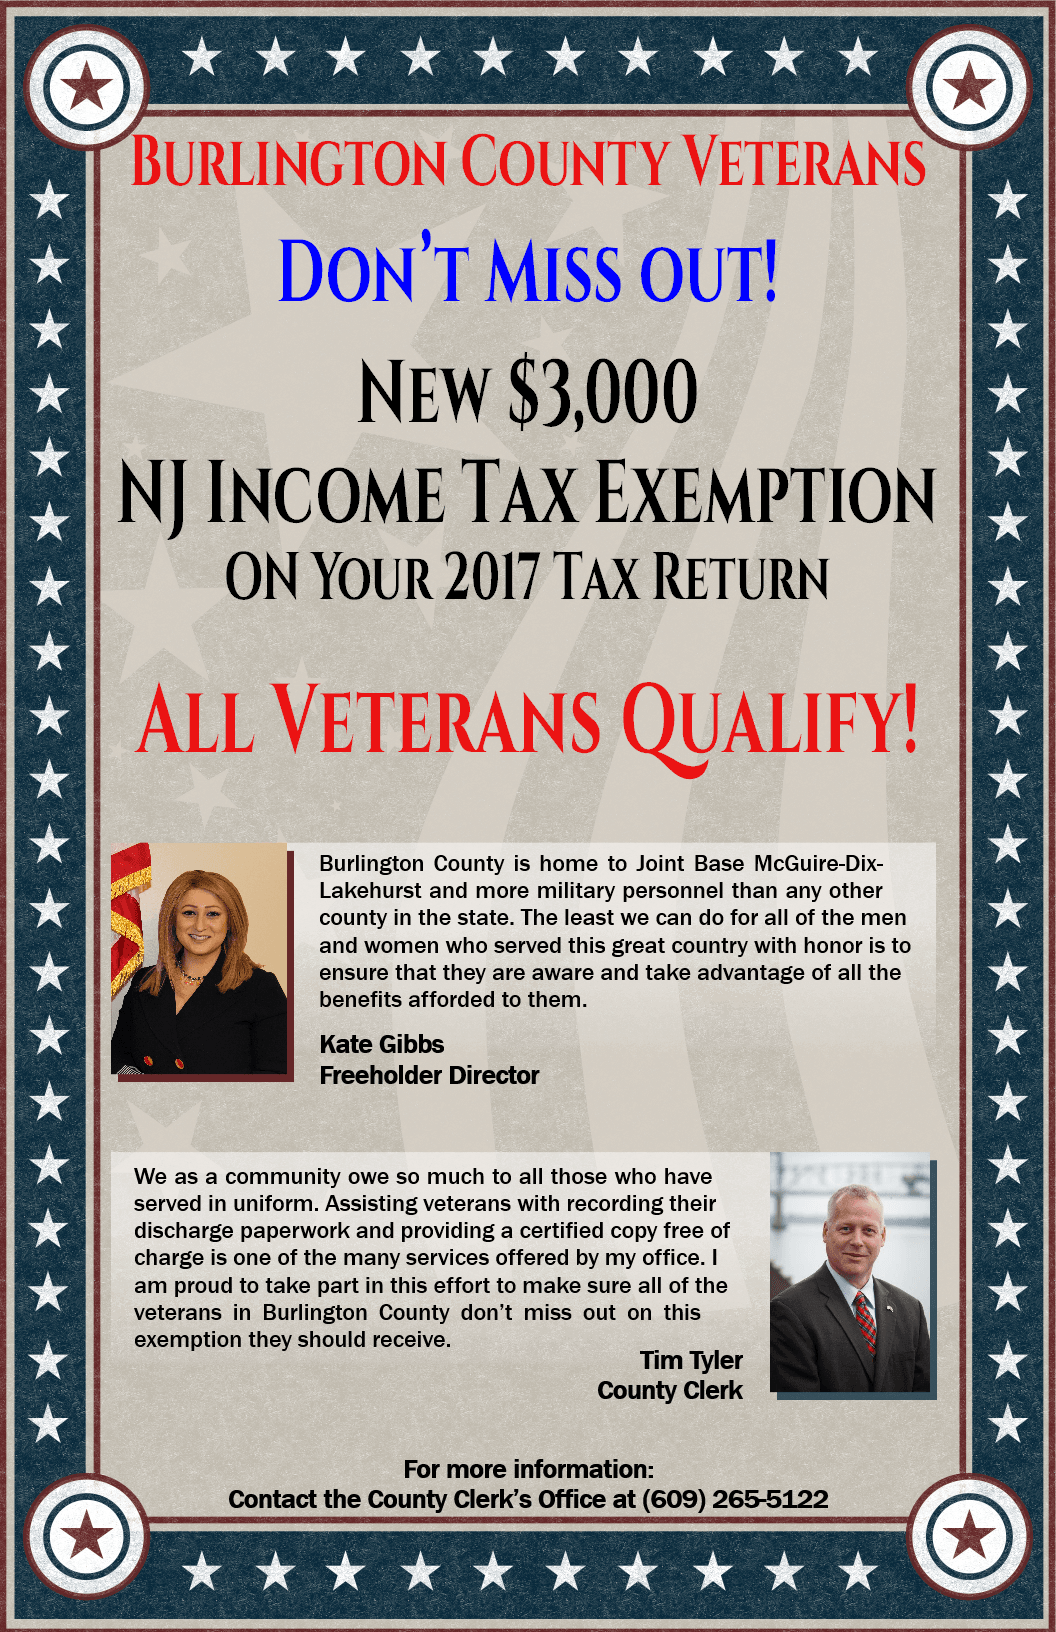 Veterans Income Tax Exemption